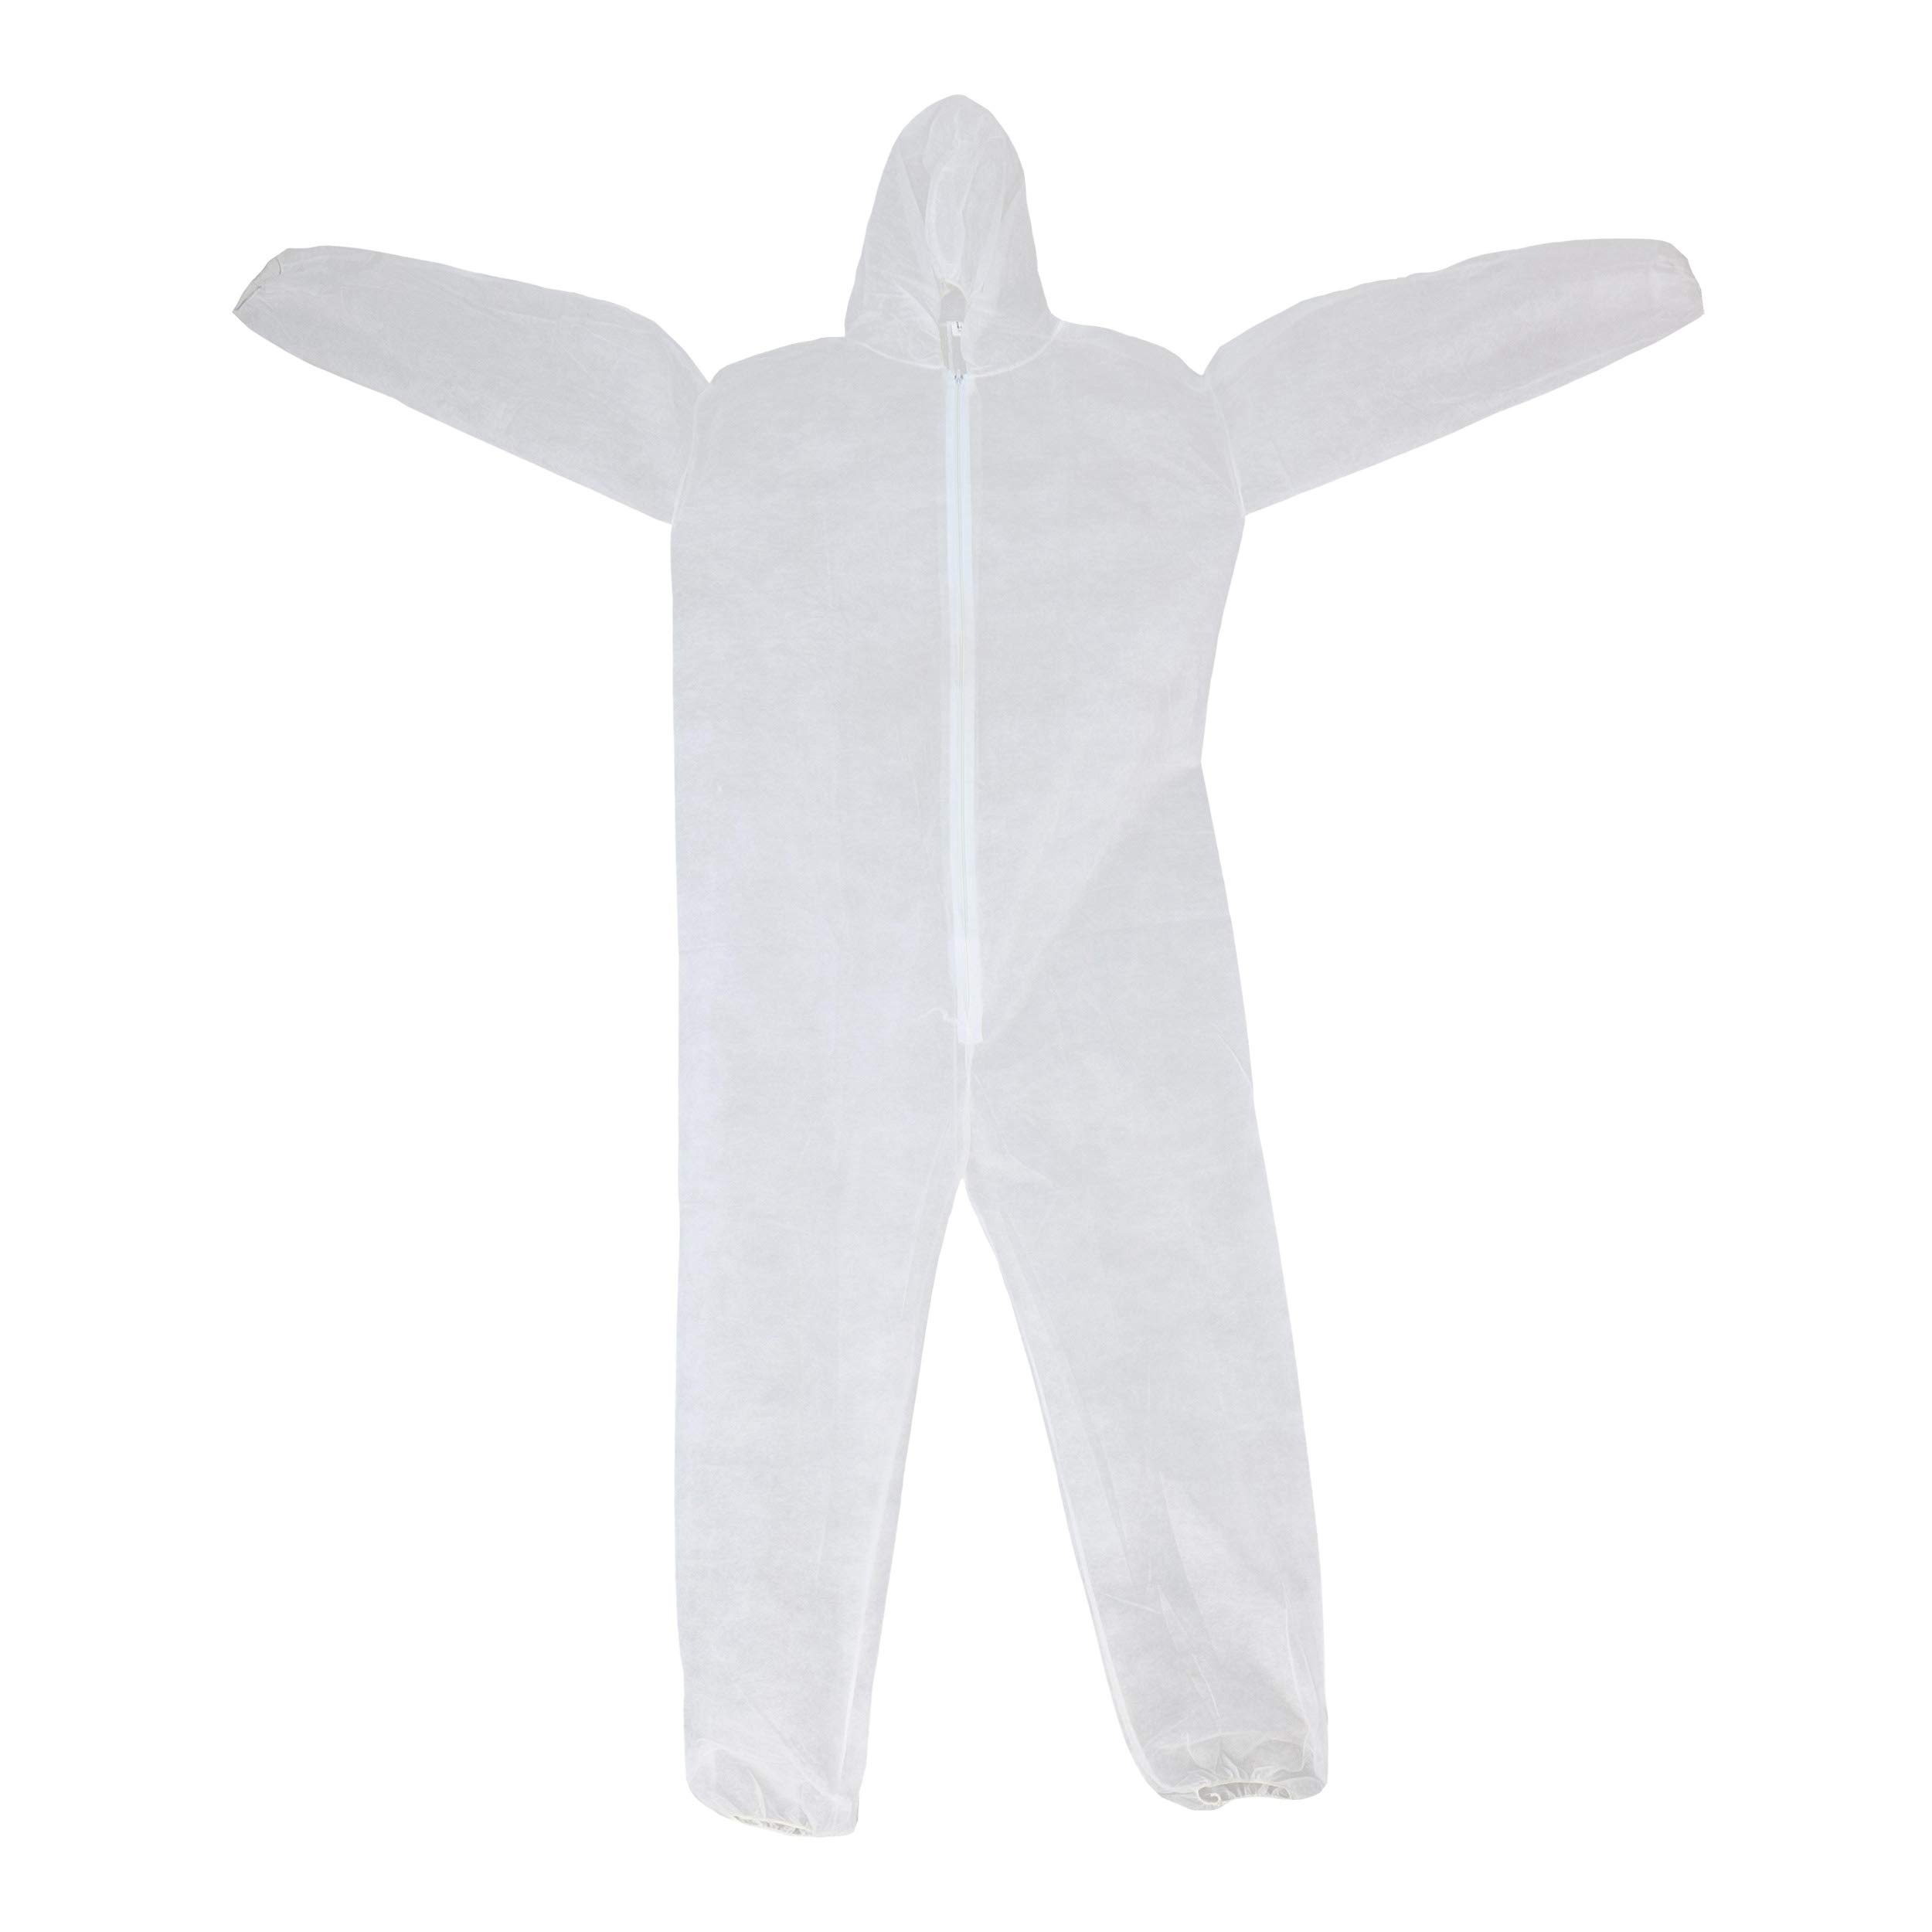 West Chester 3506 XX2XL WGT SBP Coverall Hood with Elastic Wrist & Ankles, 4XL, White (Pack of 25)